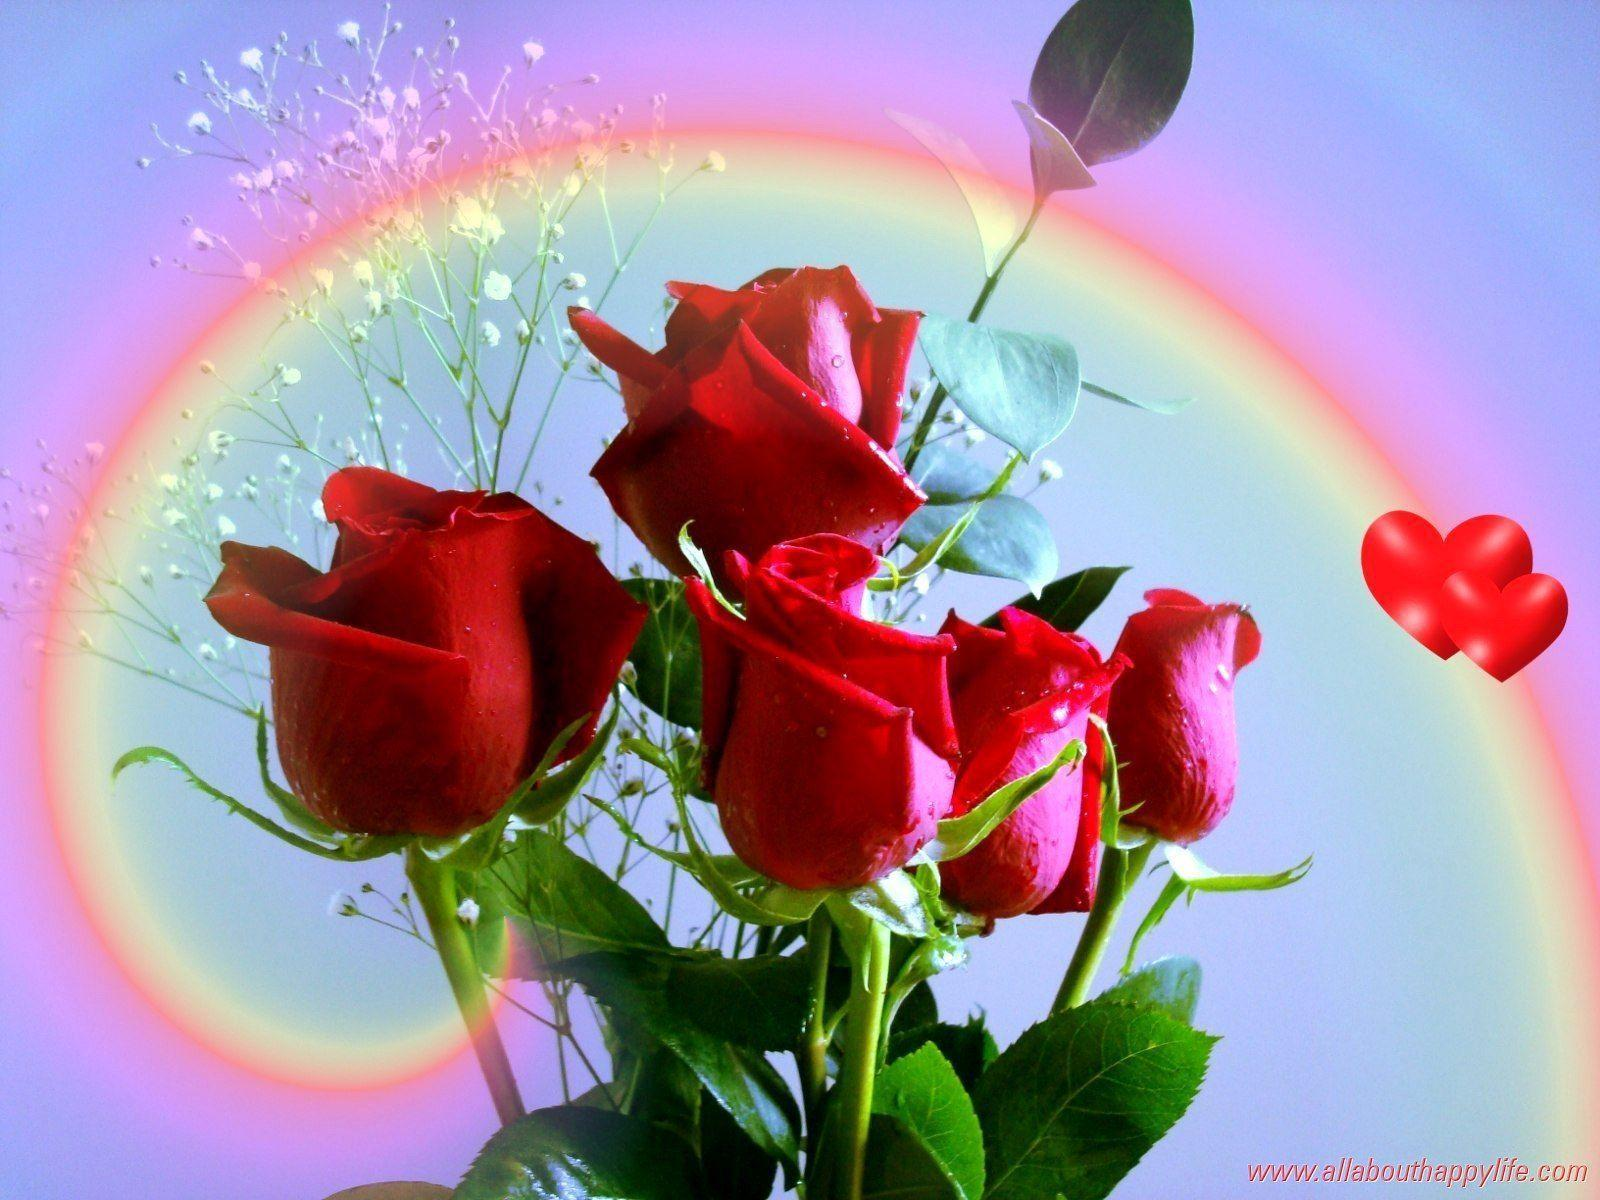 Red rose love wallpapers wallpaper cave - Images of red roses hd ...